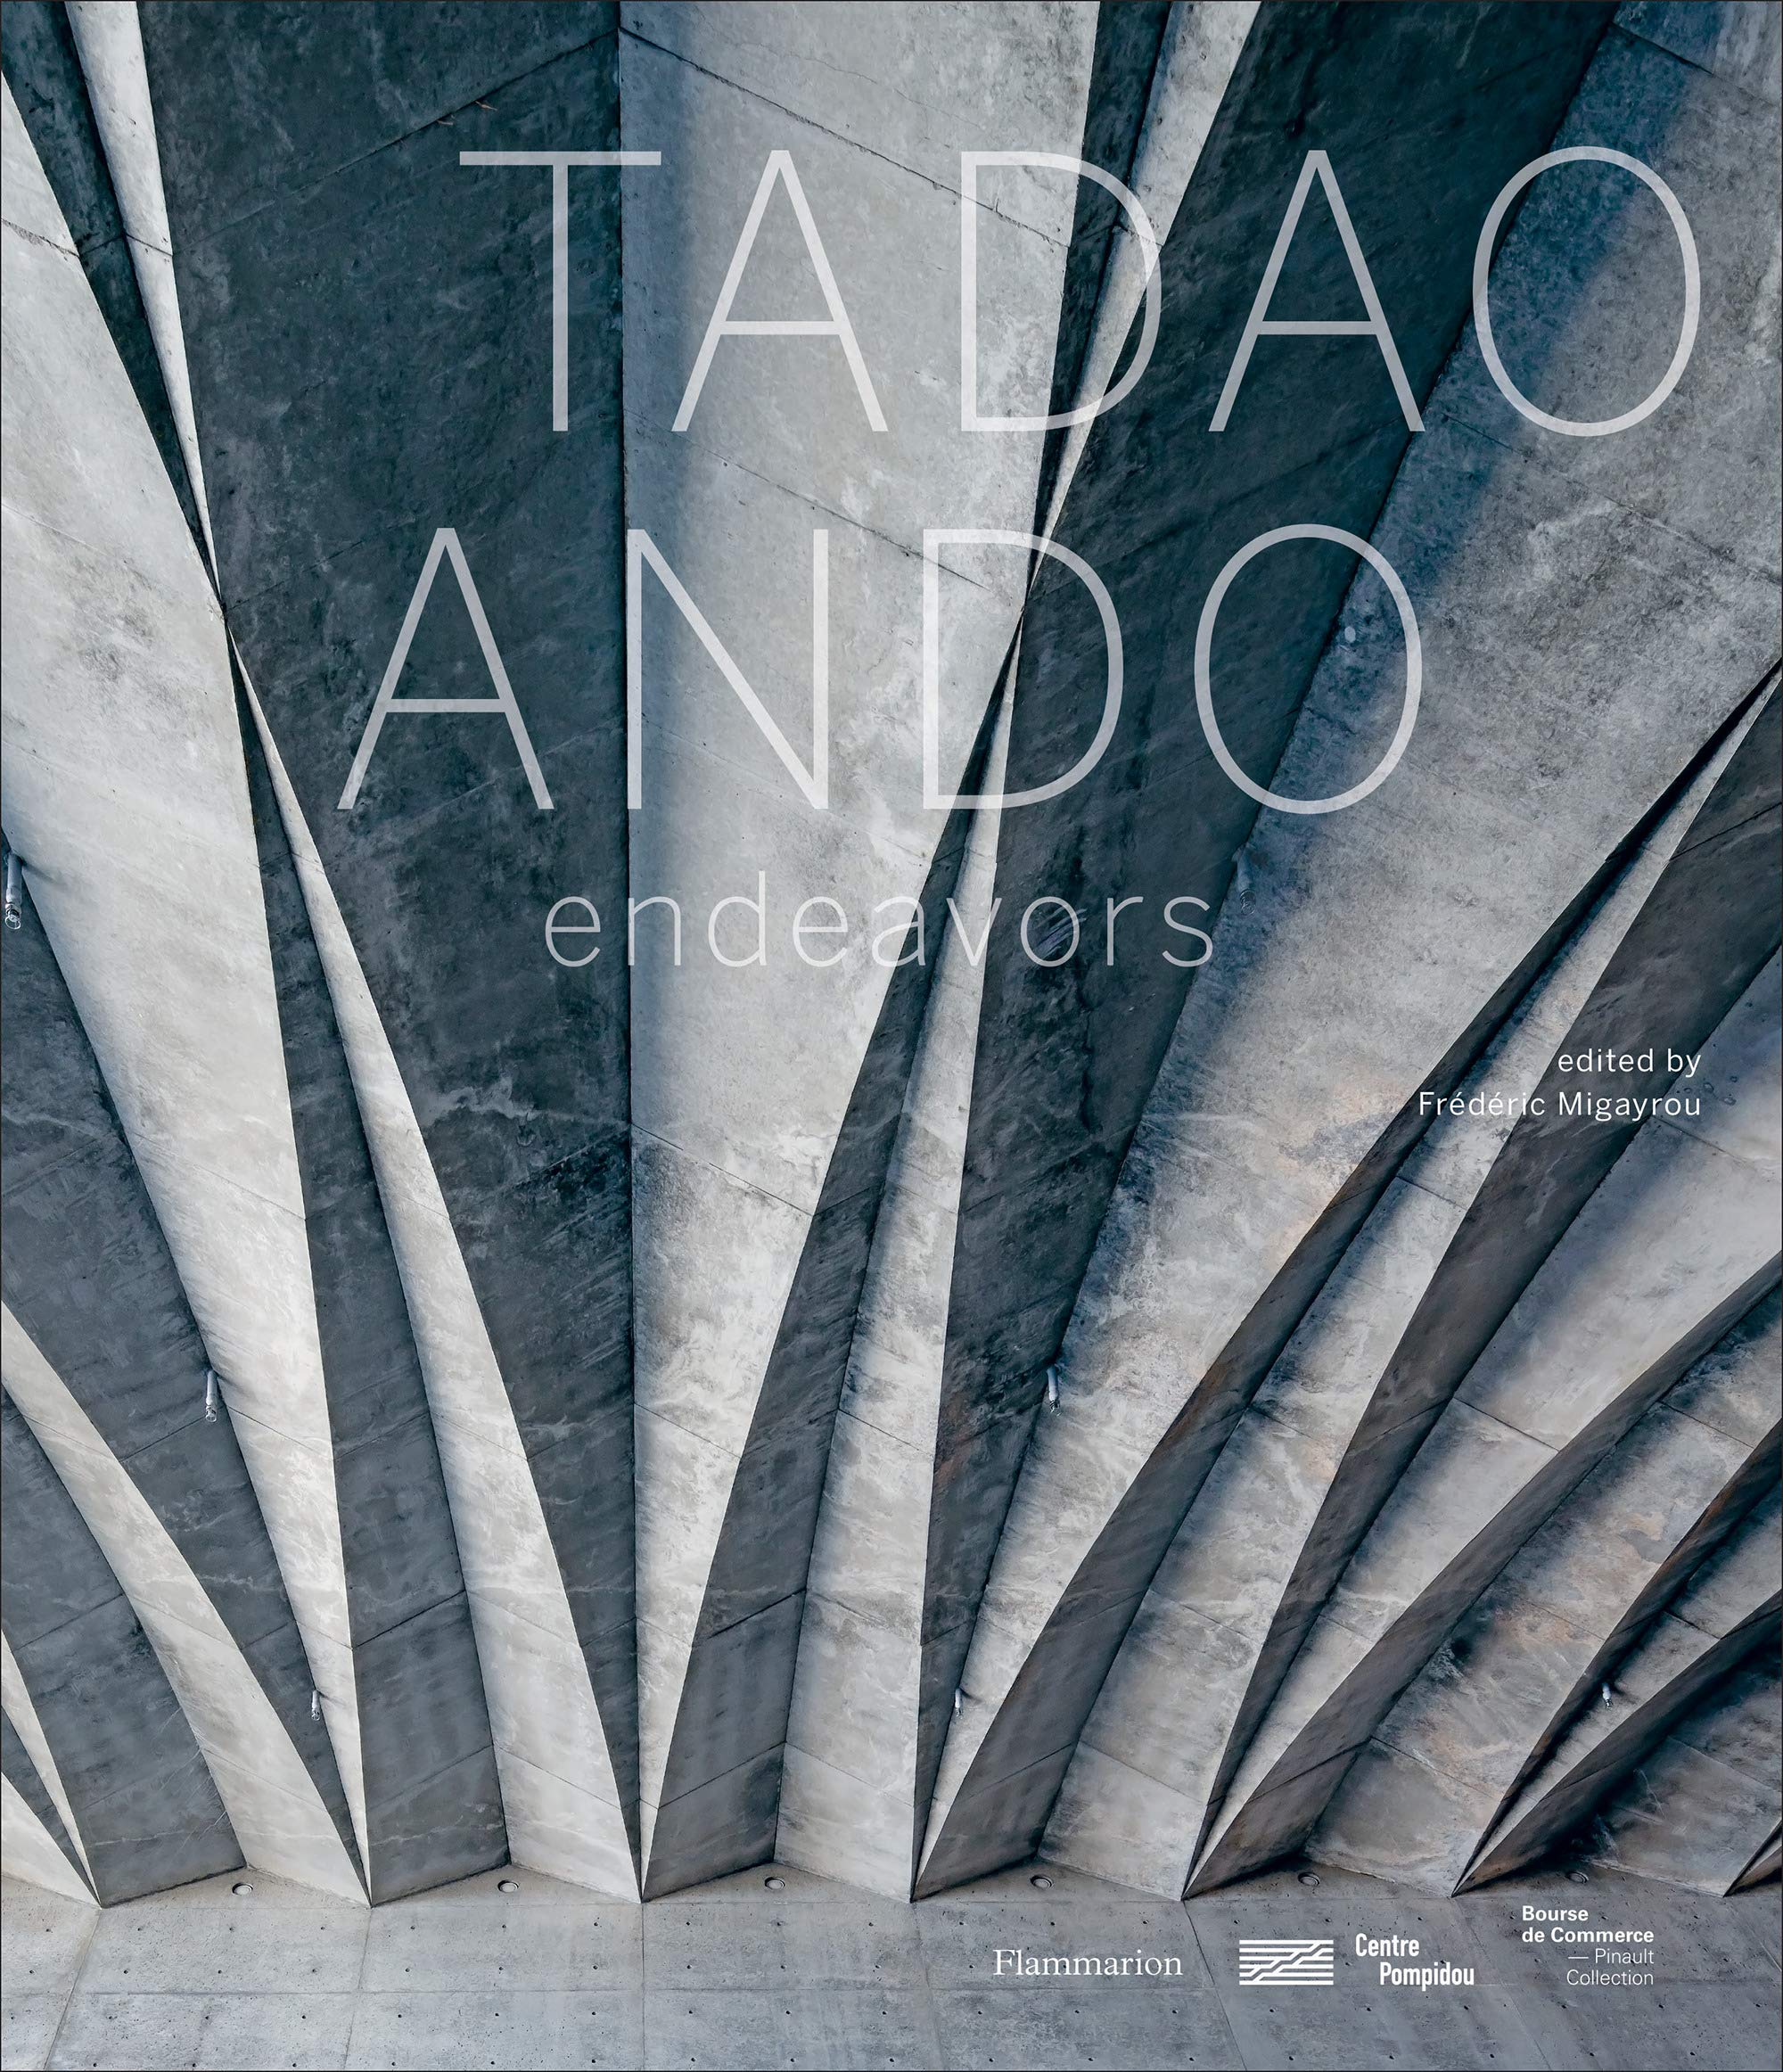 Tadao Ando: Endeavors by Flammarion